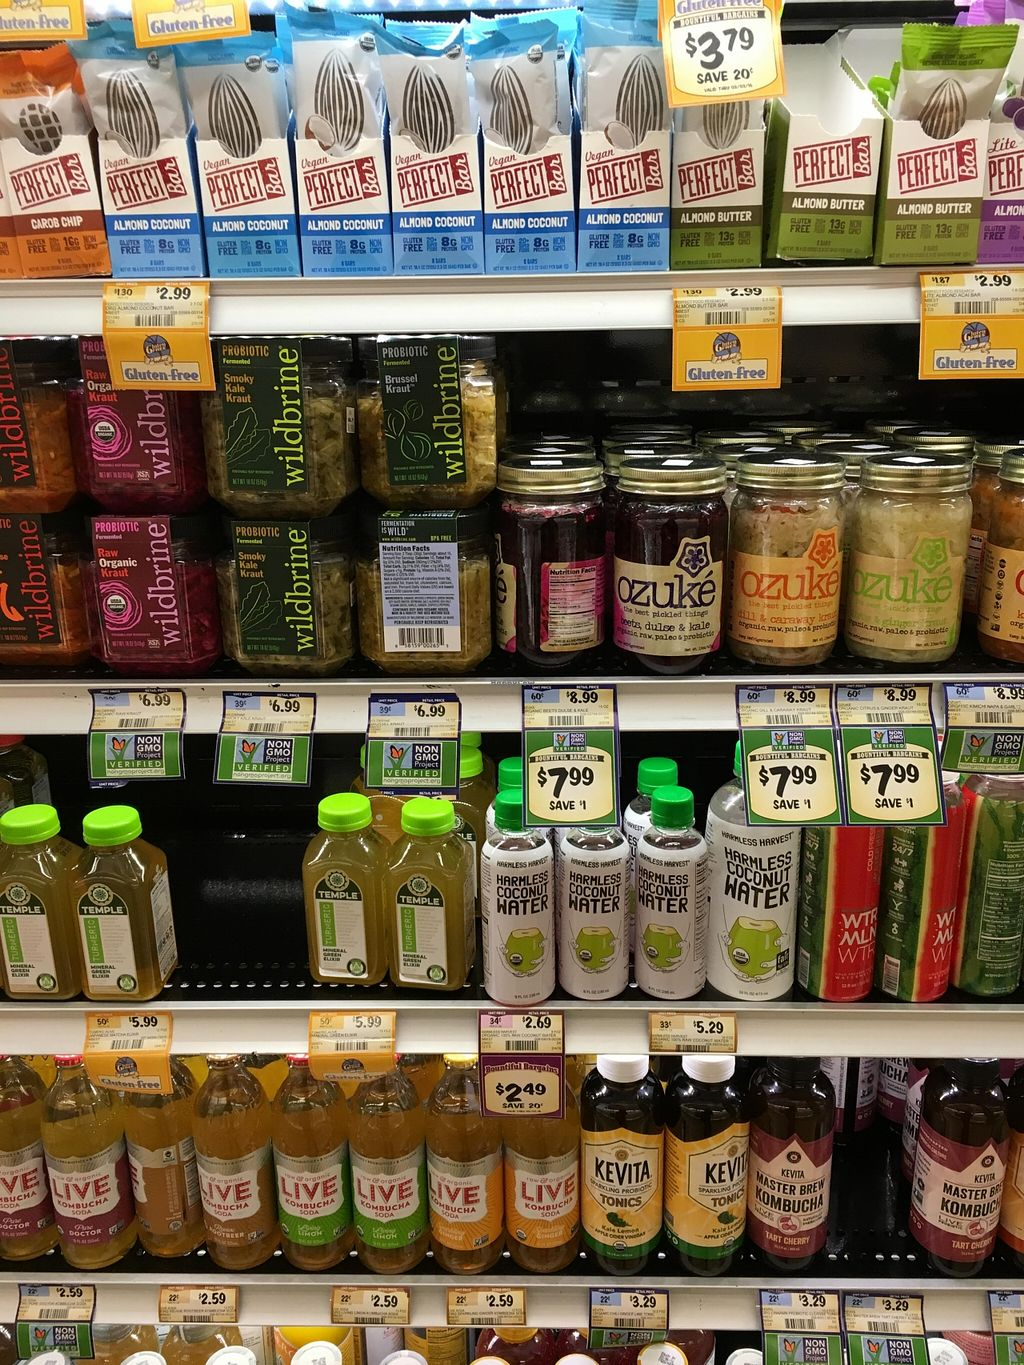 """Photo of Sprouts Farmers Market  by <a href=""""/members/profile/cookiem"""">cookiem</a> <br/>Beverages <br/> February 20, 2016  - <a href='/contact/abuse/image/68375/137019'>Report</a>"""